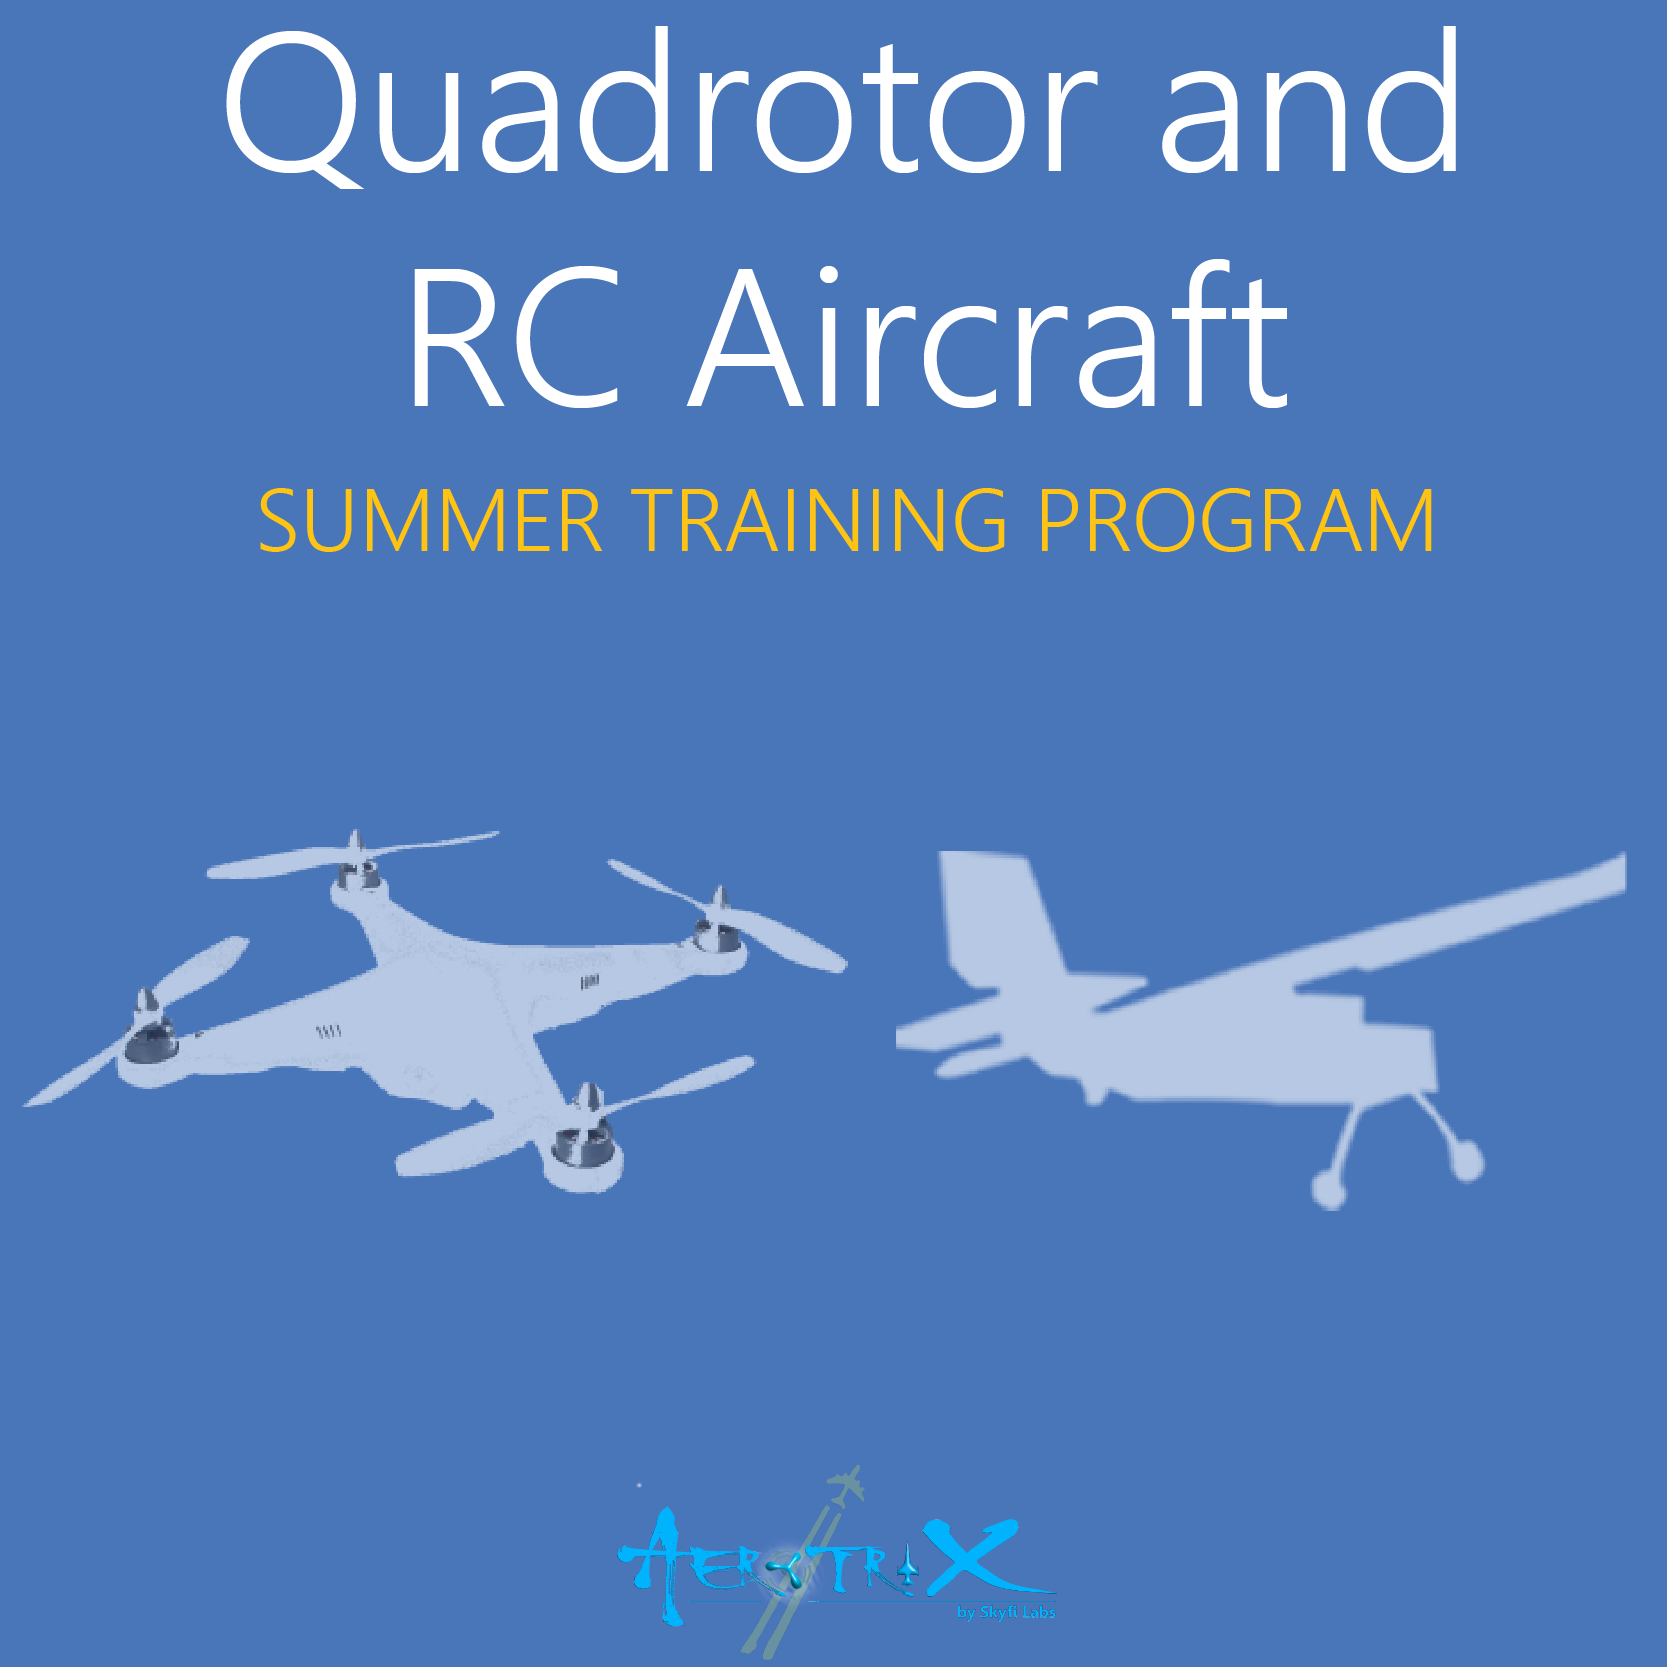 Summer Training Program on 2 UAVs (Quadrotor and RC Aircraft)  at Skyfi Labs Center Workshop